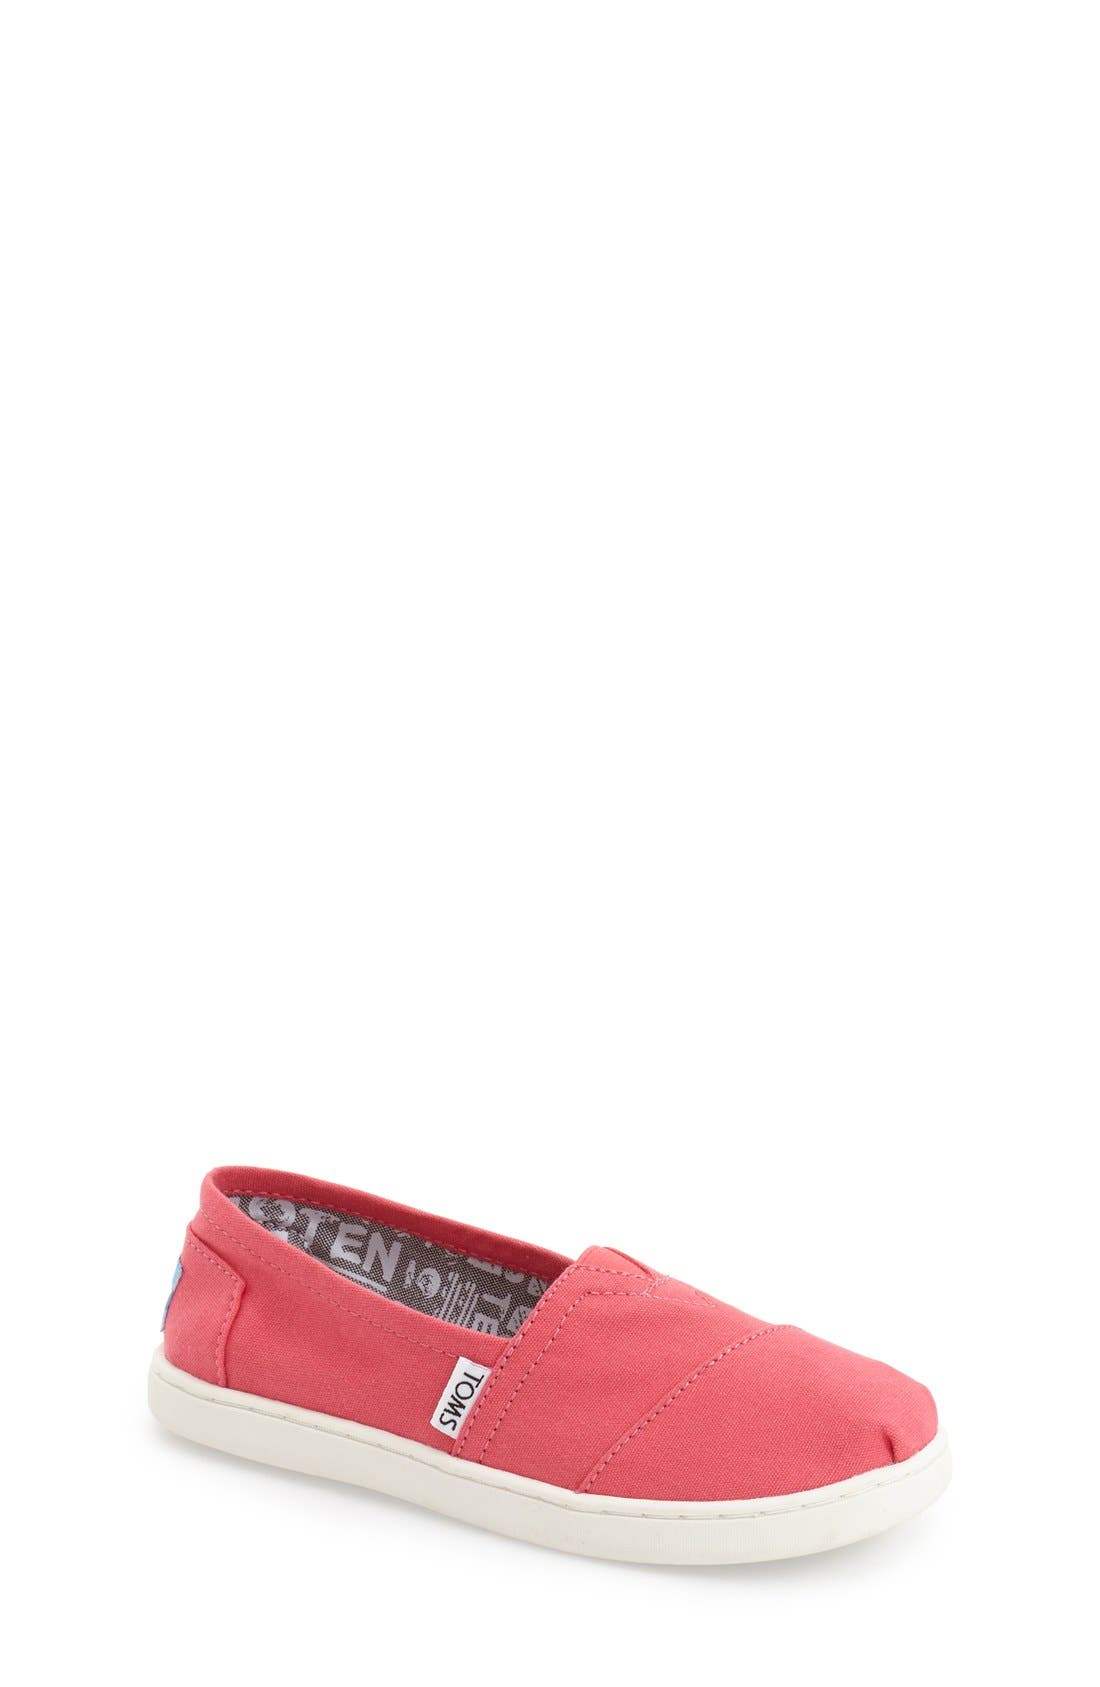 'Classic - Youth' Slip-On,                             Main thumbnail 1, color,                             Medium Pink